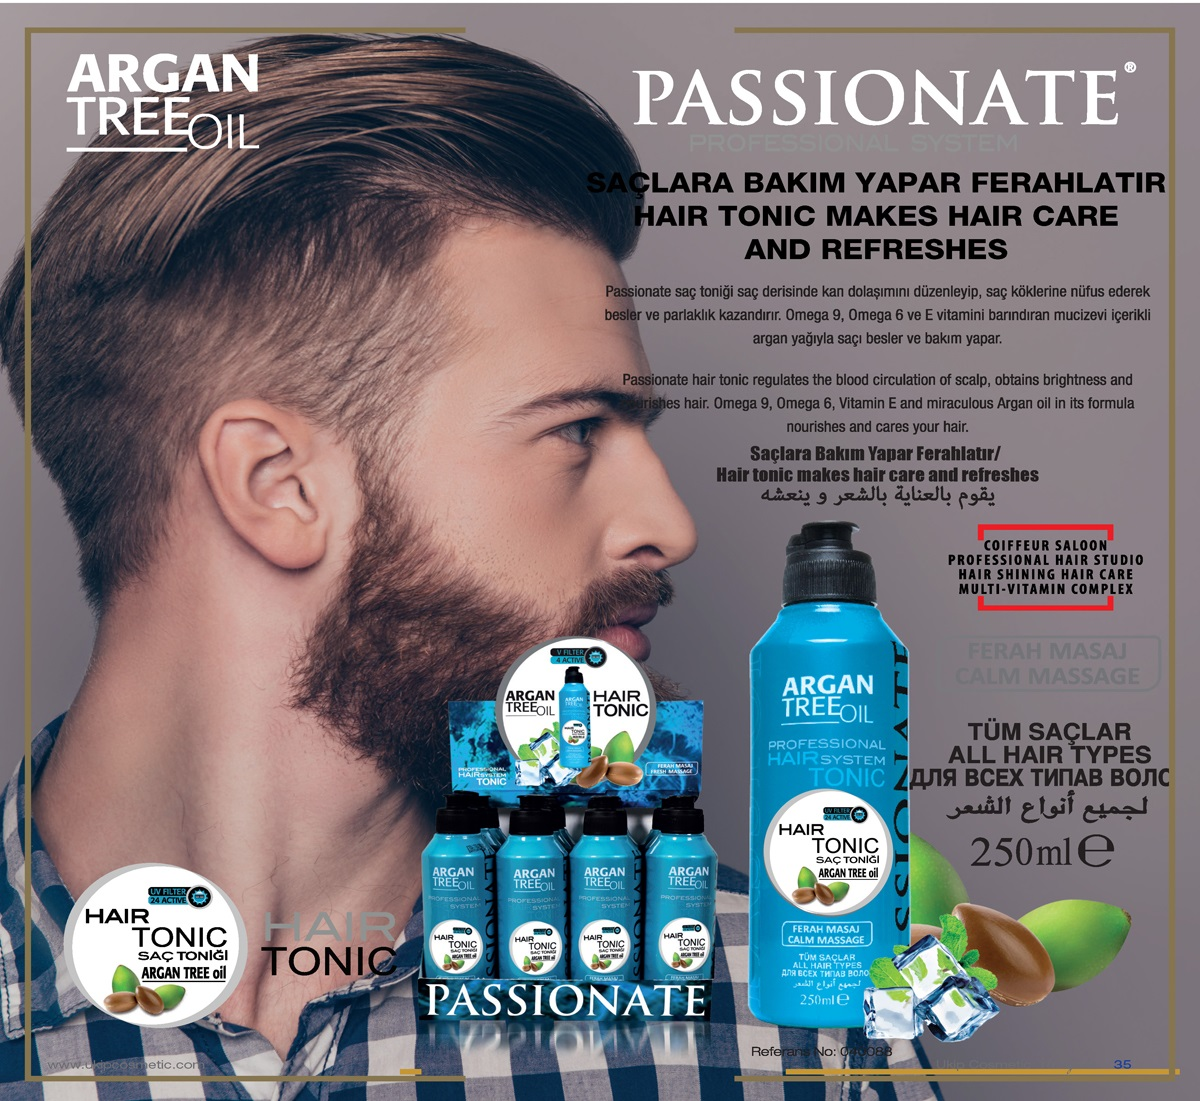 Passionate Professional System Hair Tonic